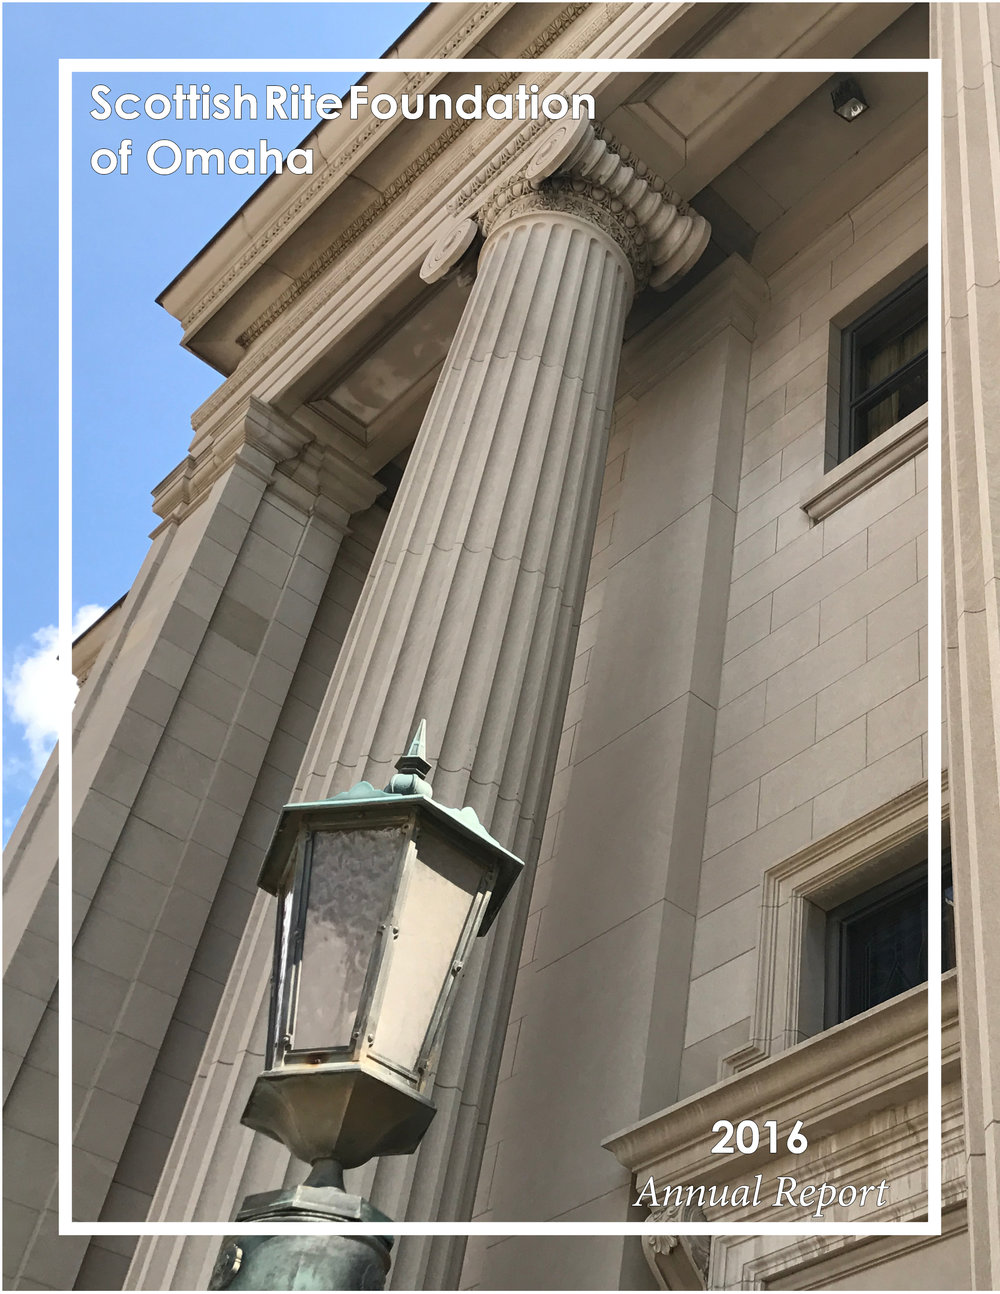 Click the above image to download a copy of the 2016 Scottish Rite Foundation of Omaha Annual Report.